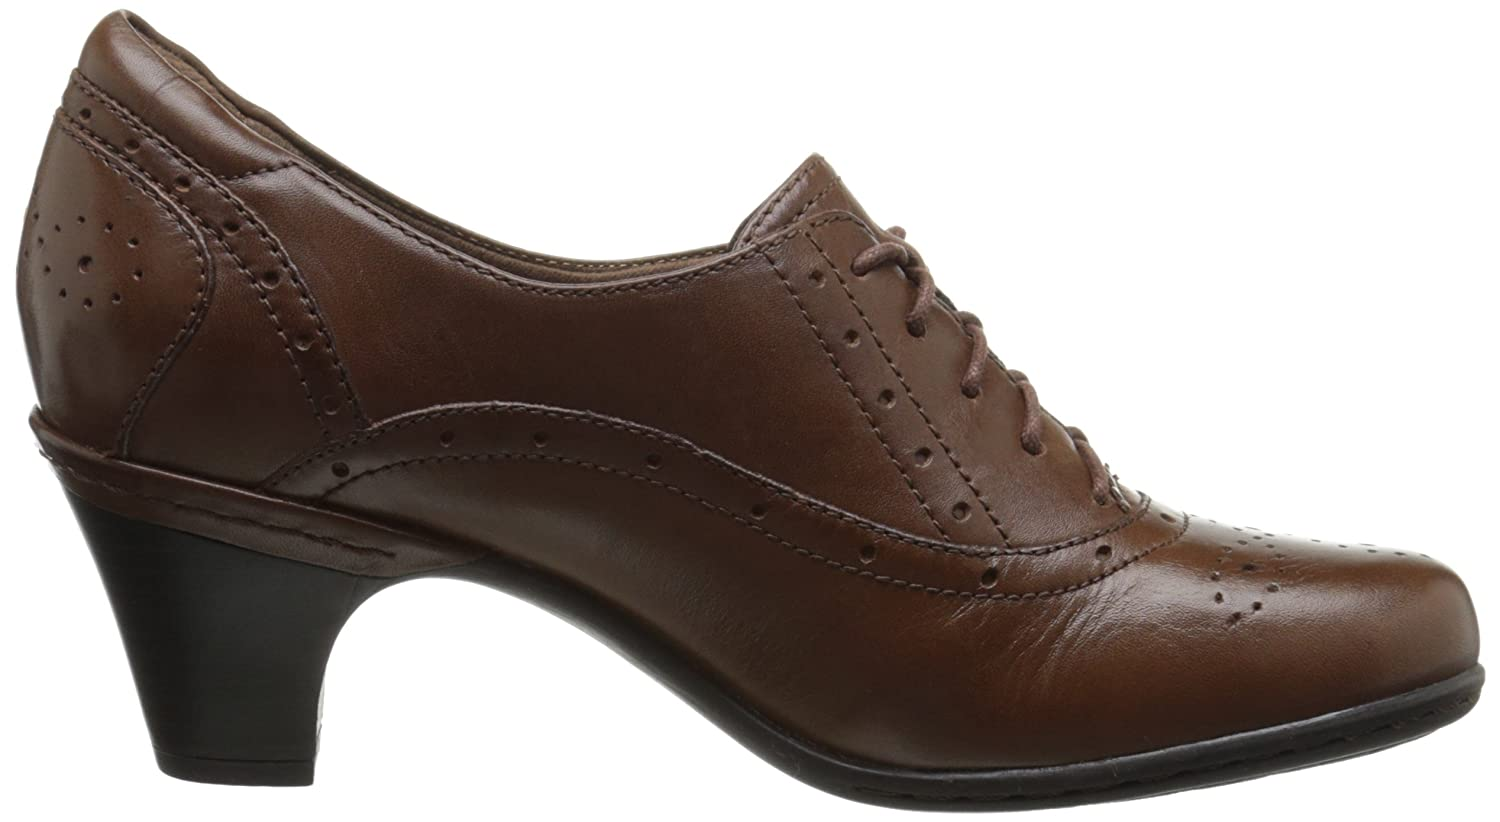 Cobb Hill Rockport B00SK4A37I Women's Shayla Dress Pump B00SK4A37I Rockport 8 N US|Brown cc64a2